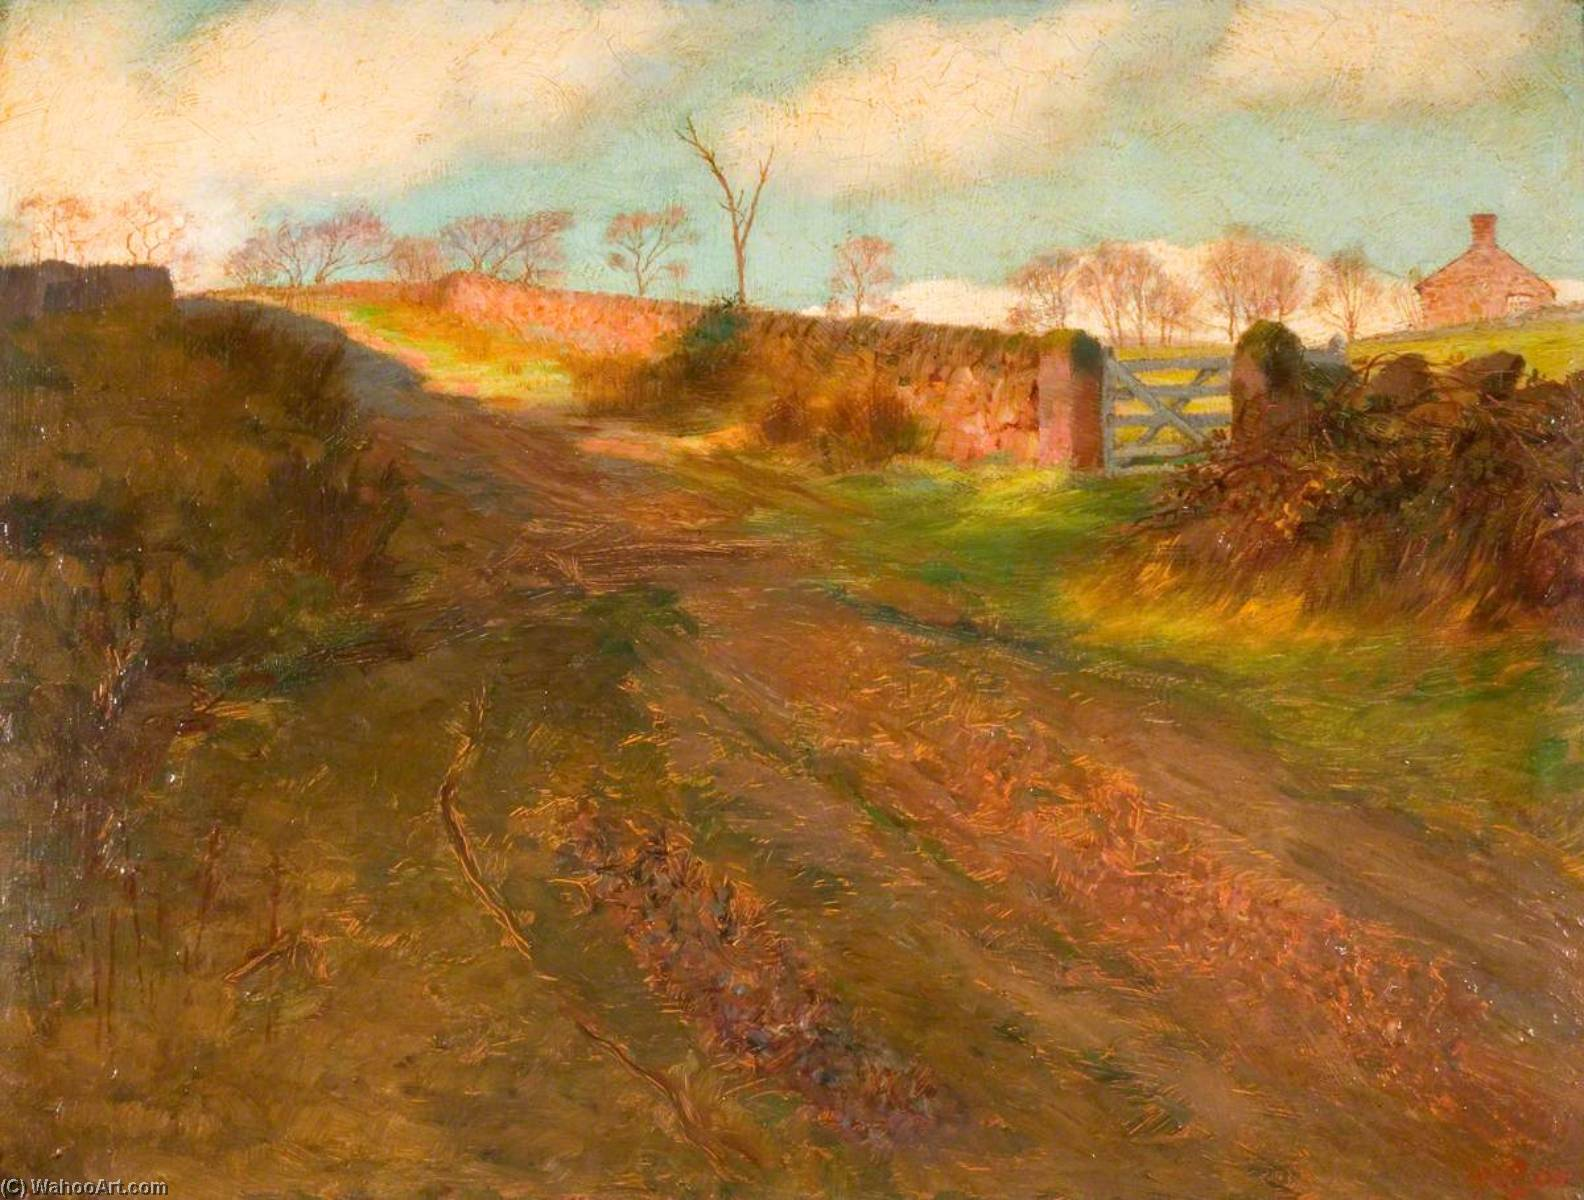 Winter Sunshine, Cliff Park, Rudyard, 1900 by George Cartlidge | WahooArt.com